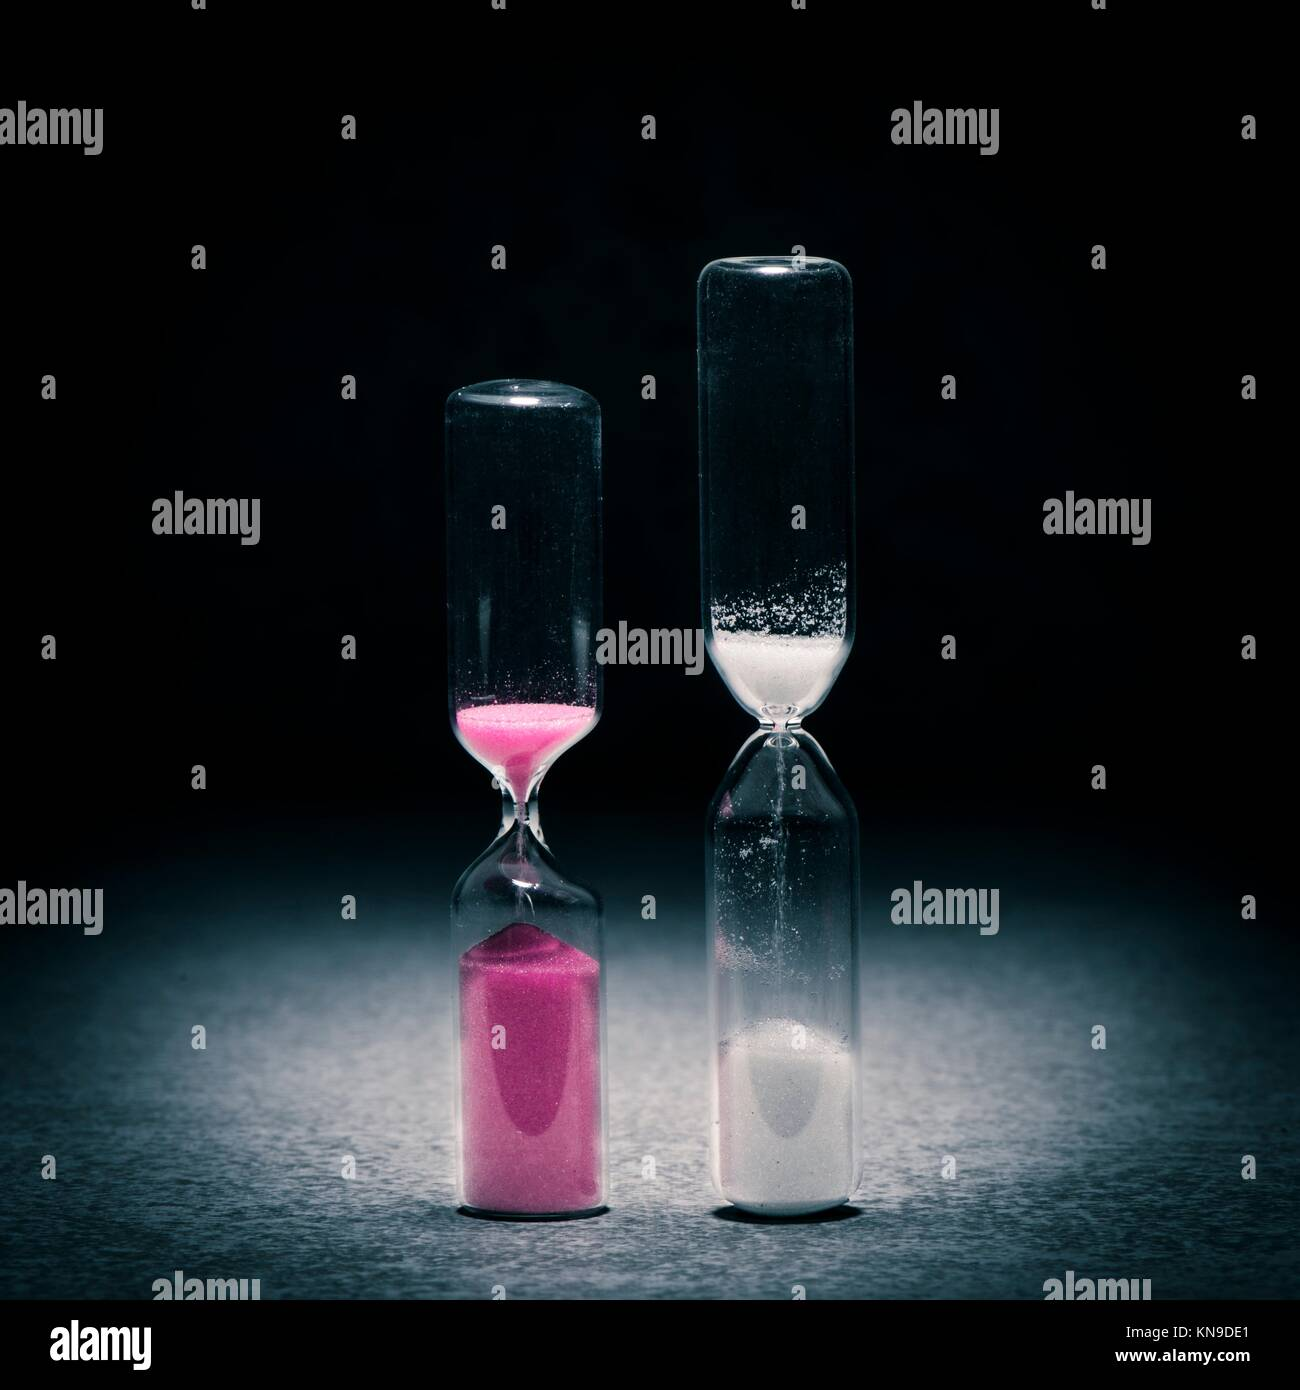 Deadline symbol with hourglass competition. Concept of time, pressure and countdown. - Stock Image